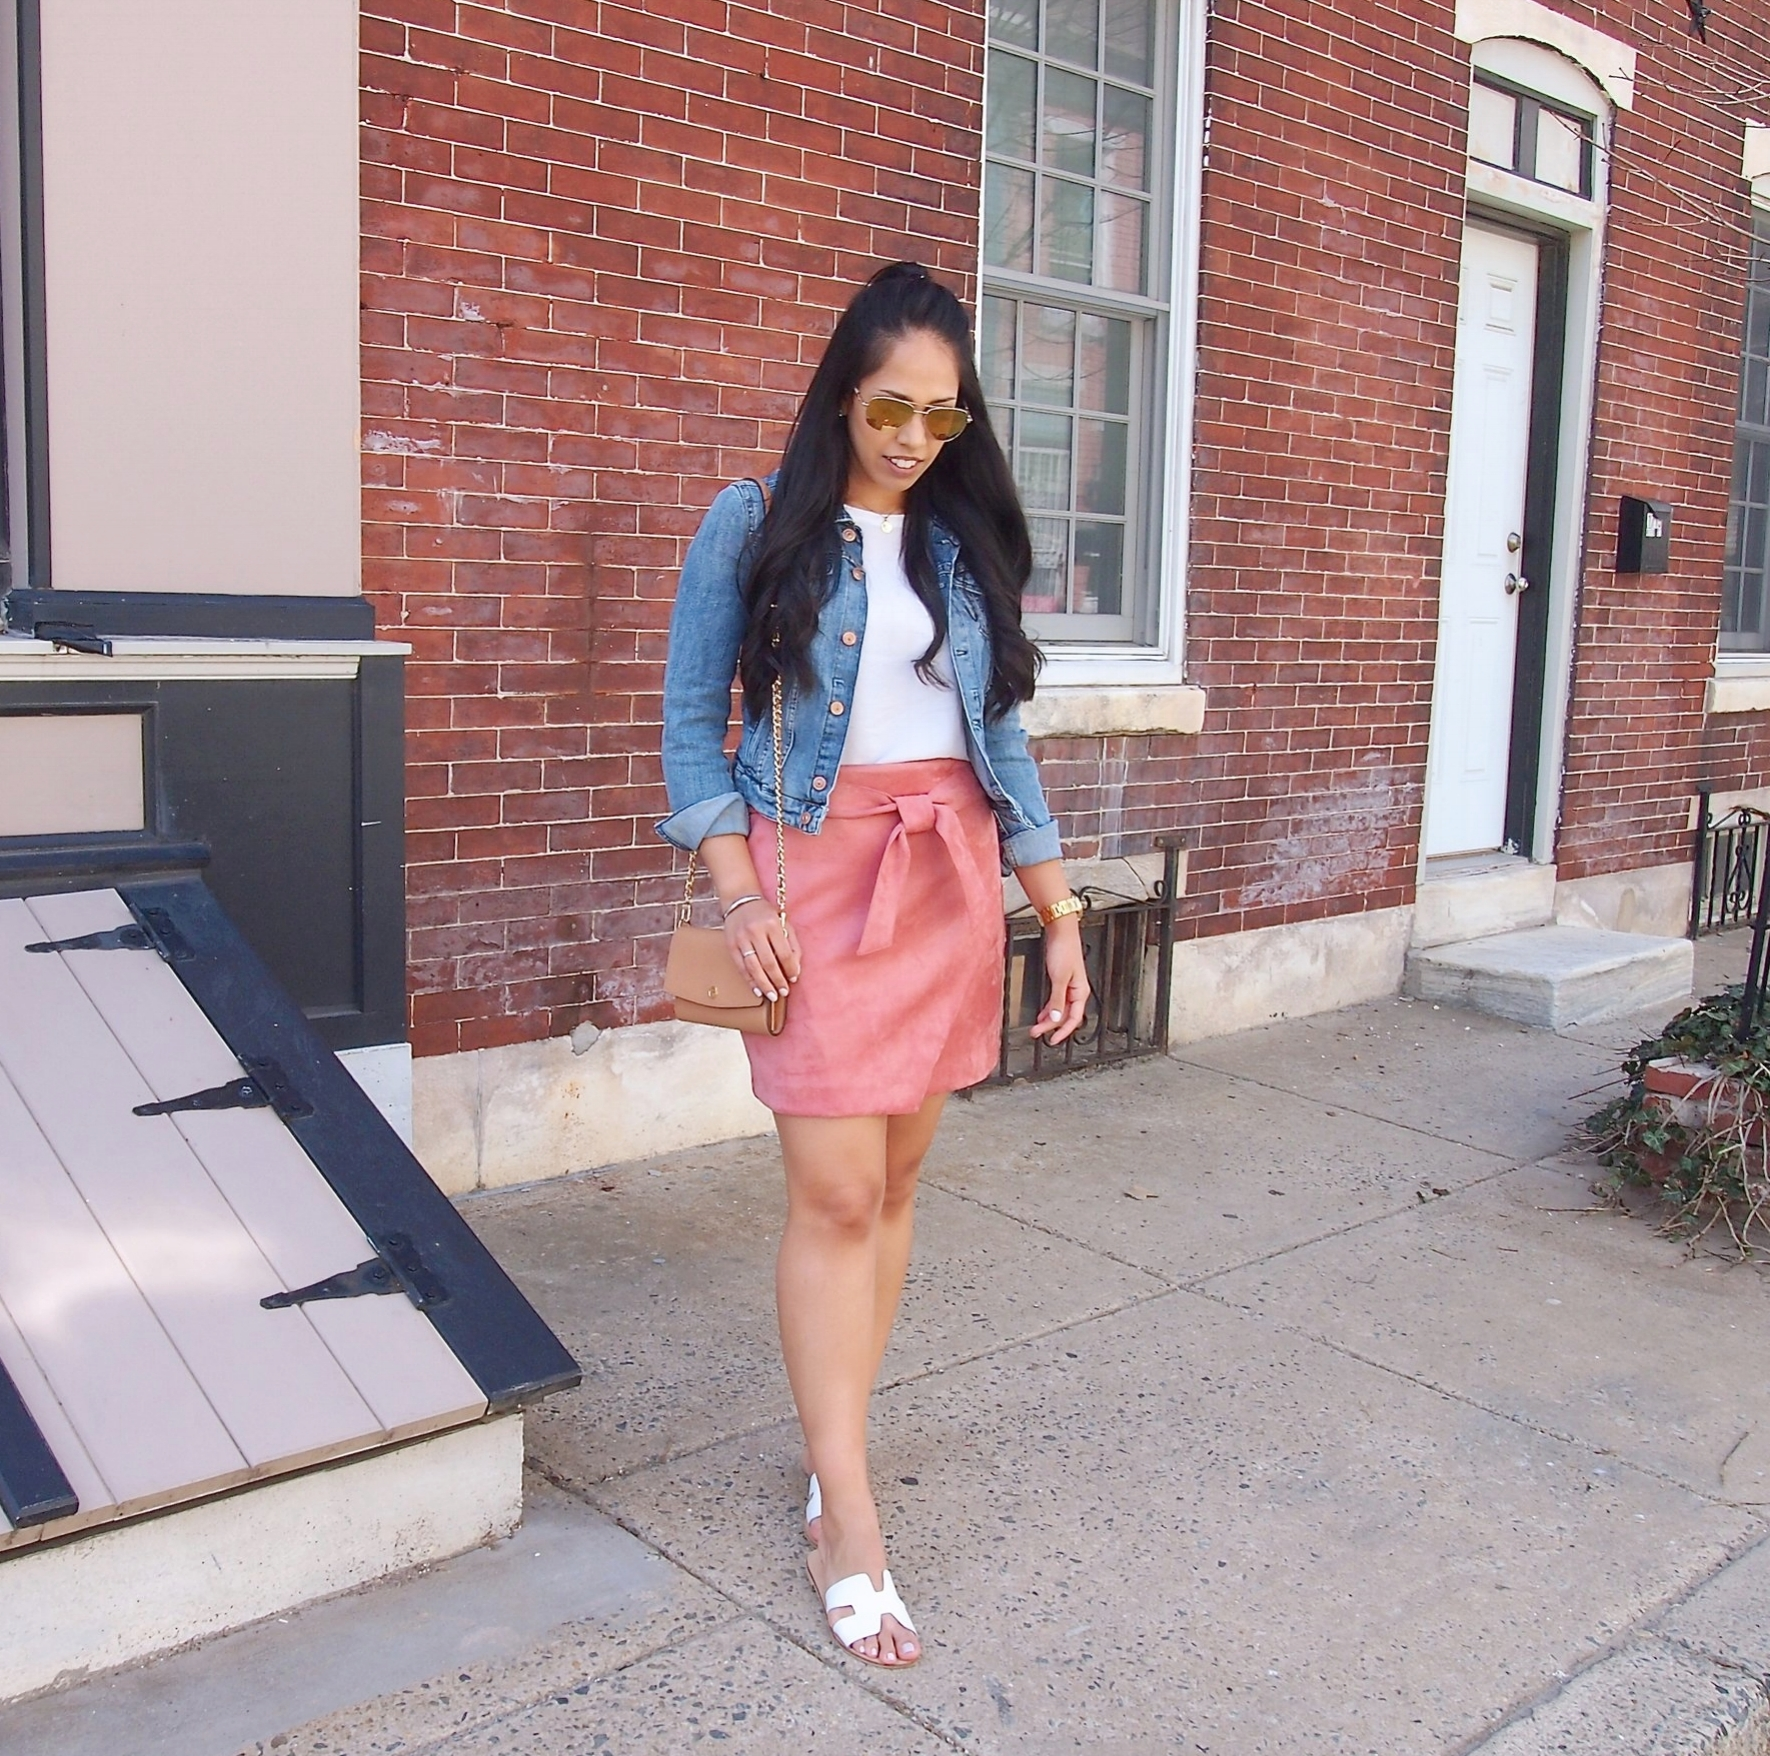 the-suede-skirt-you-need-for-spring.jpg